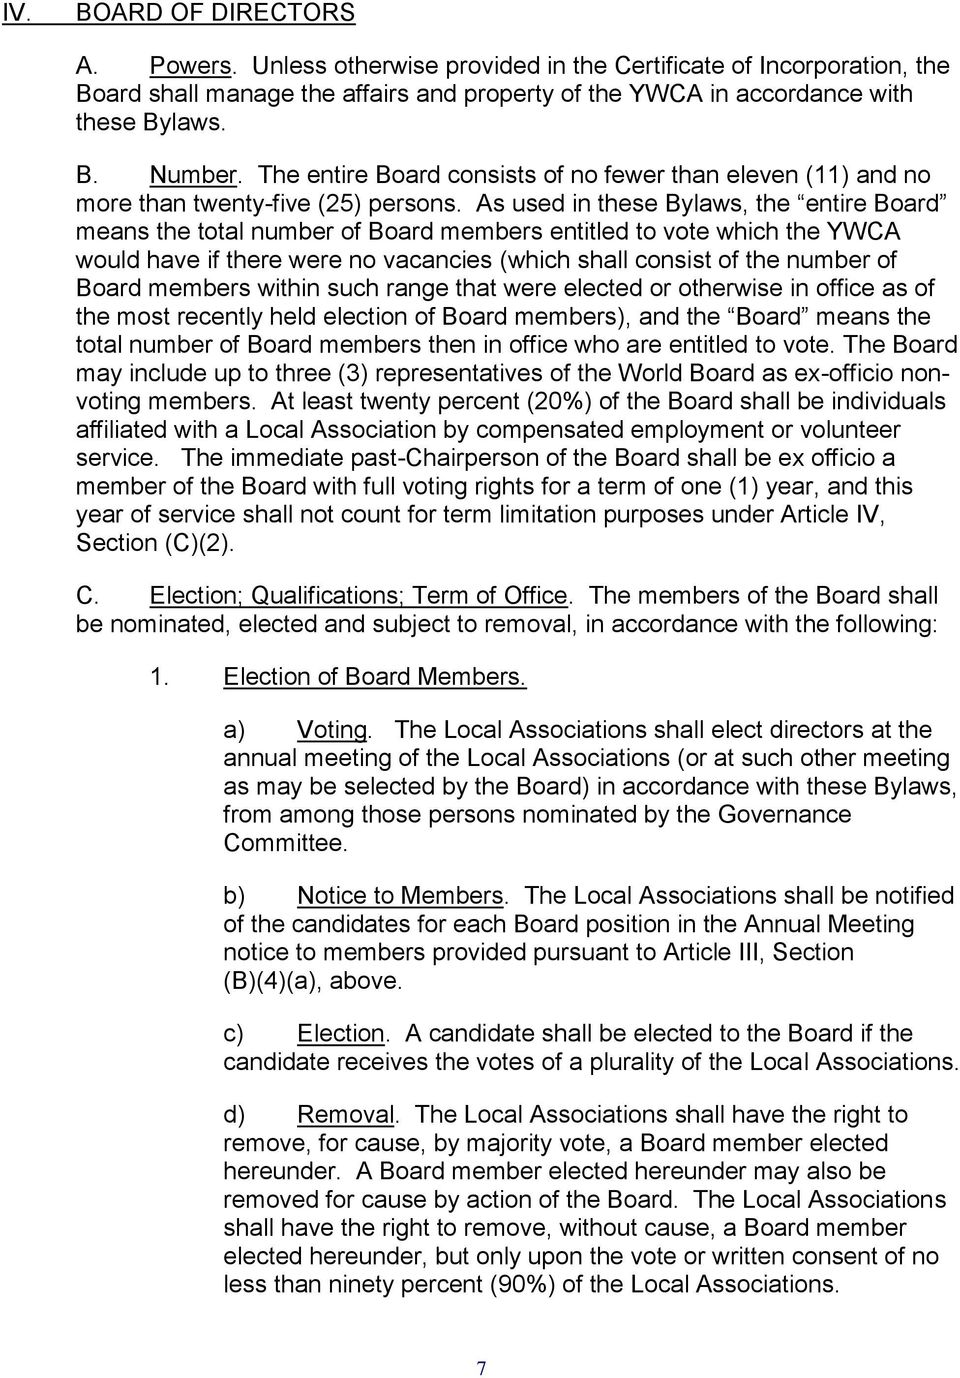 As used in these Bylaws, the entire Board means the total number of Board members entitled to vote which the YWCA would have if there were no vacancies (which shall consist of the number of Board